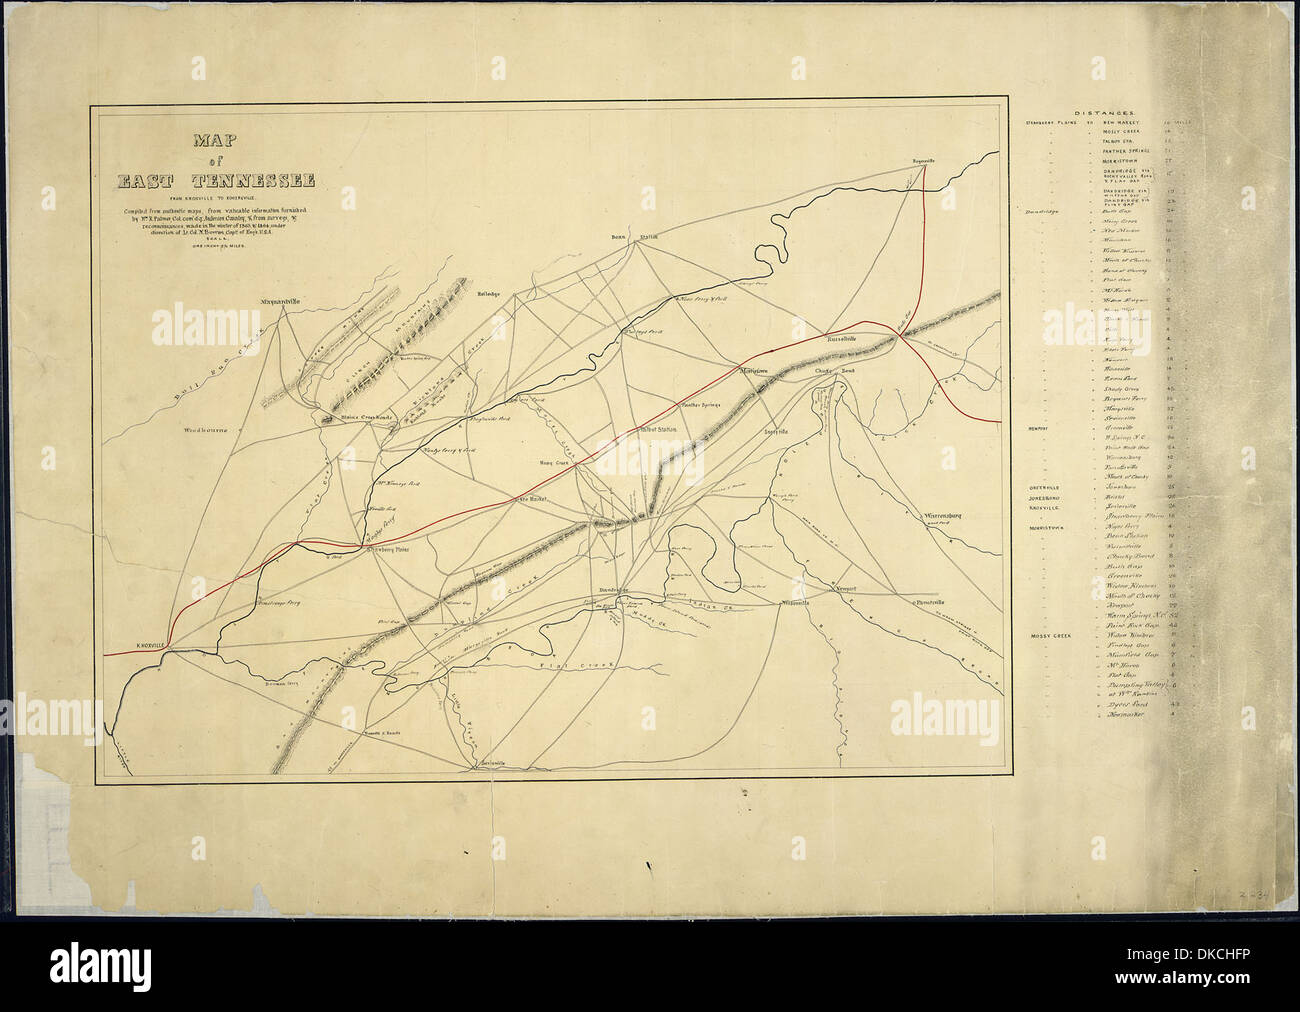 Map Of East Tennessee From Knoxville To Rogersville Compiled From